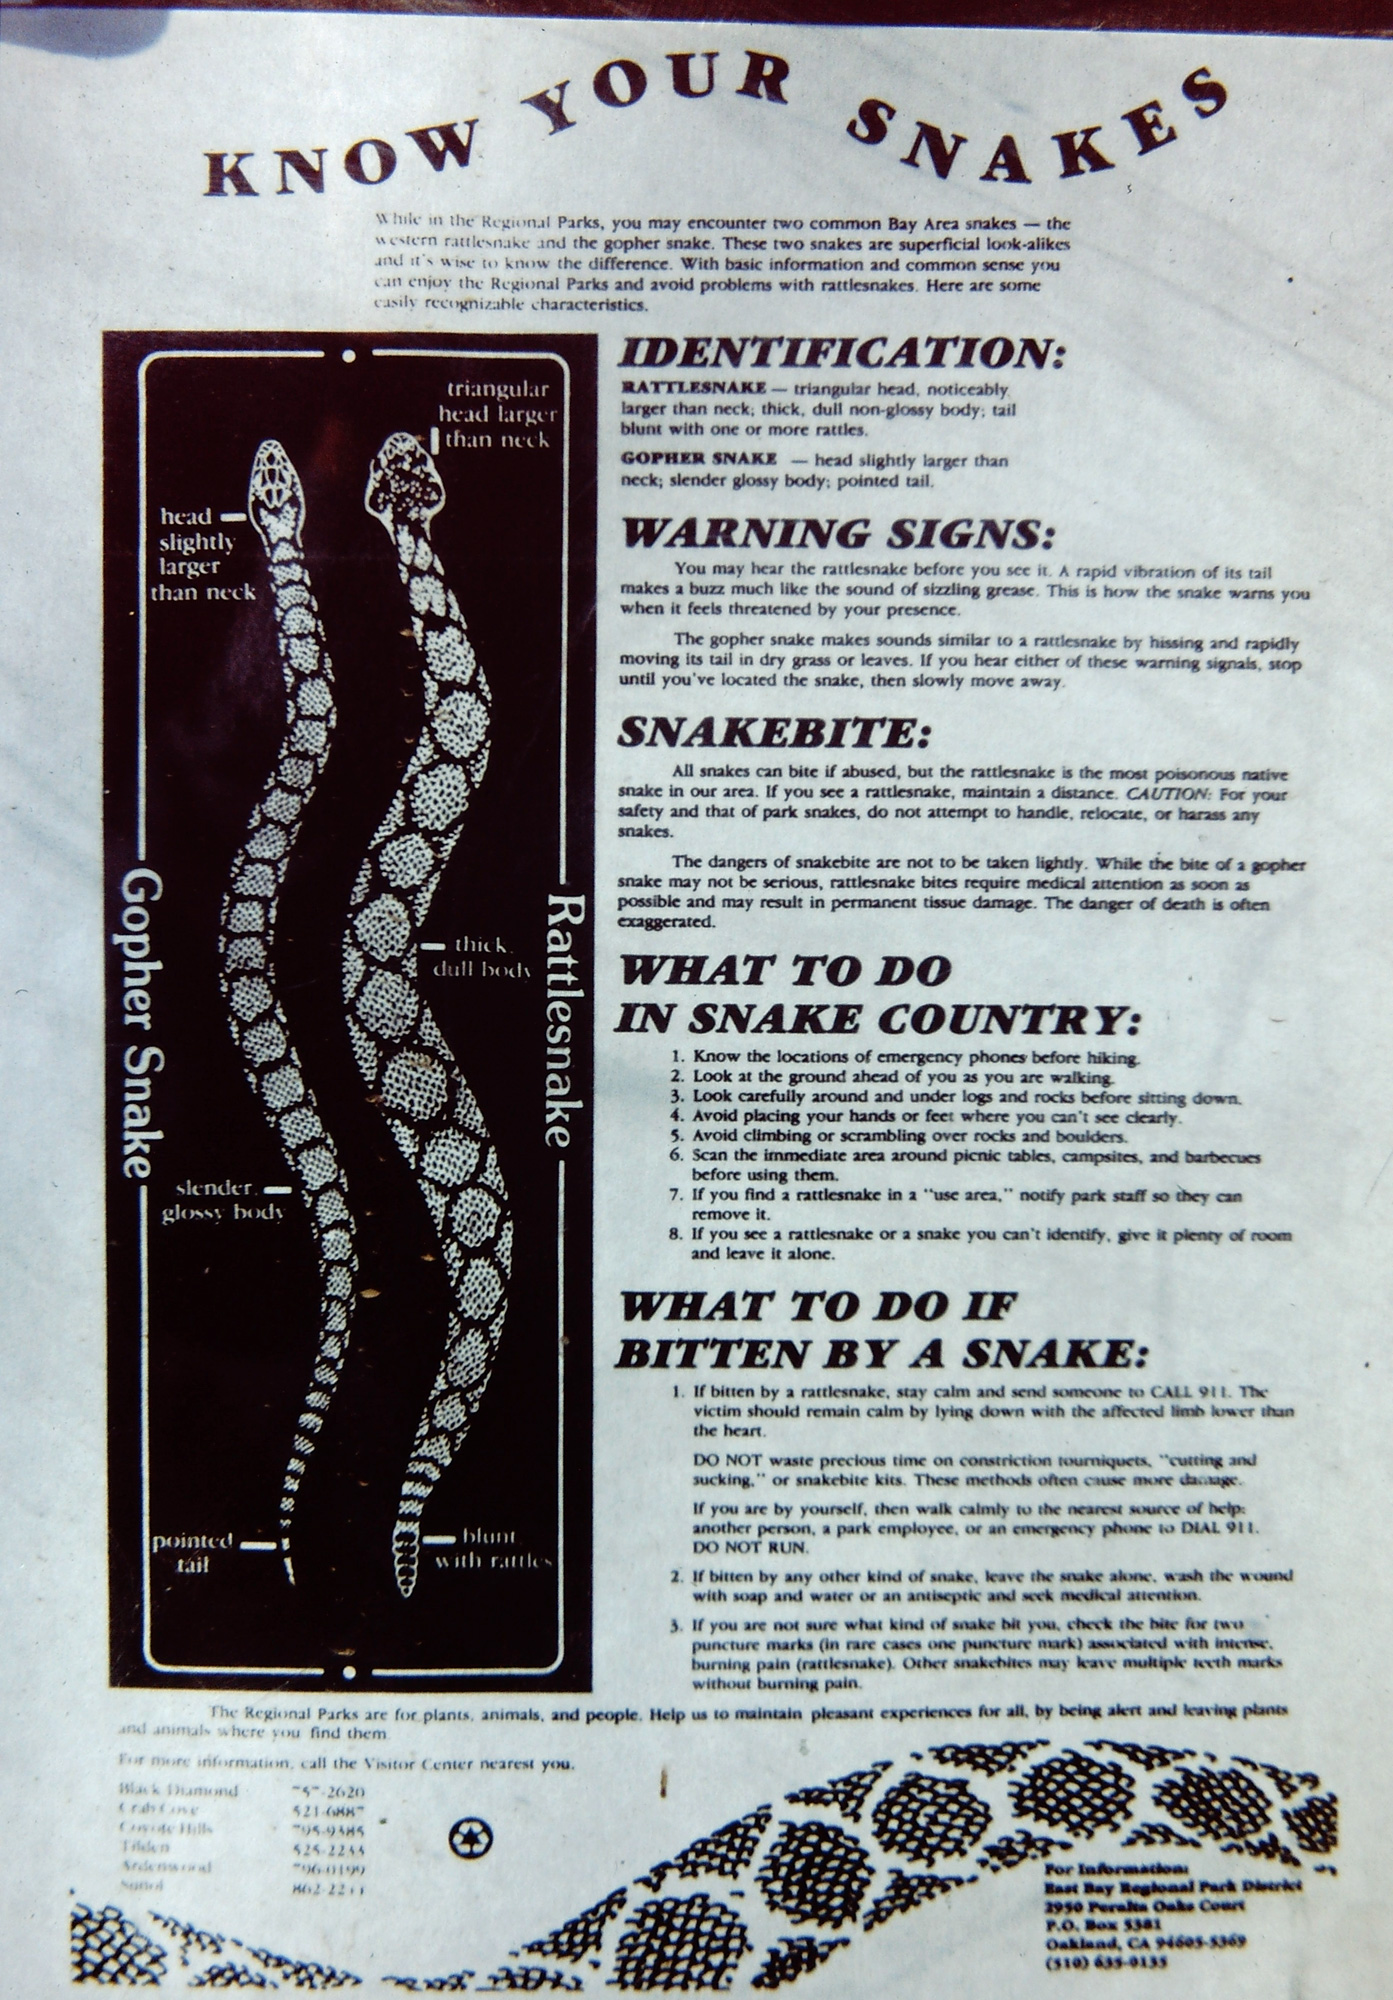 What Is The Difference Between A Kingsnake Vs A